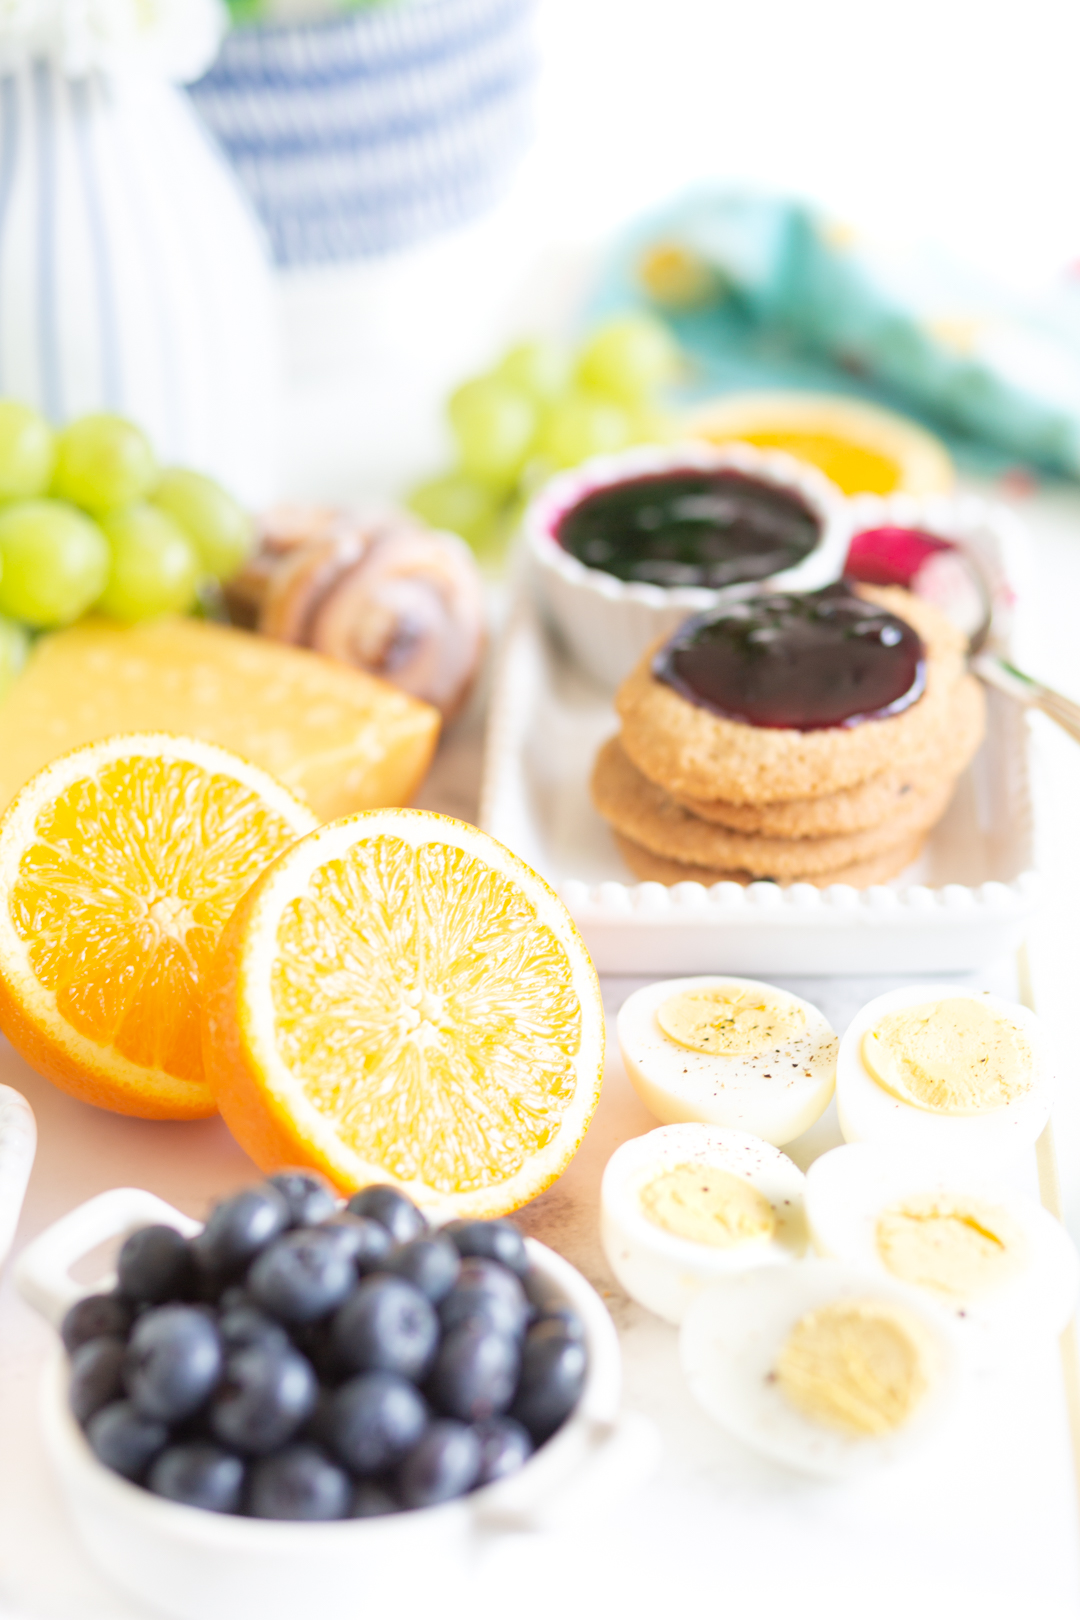 pretty brunch board with halved oranges, fresh blueberries, hard booked eggs